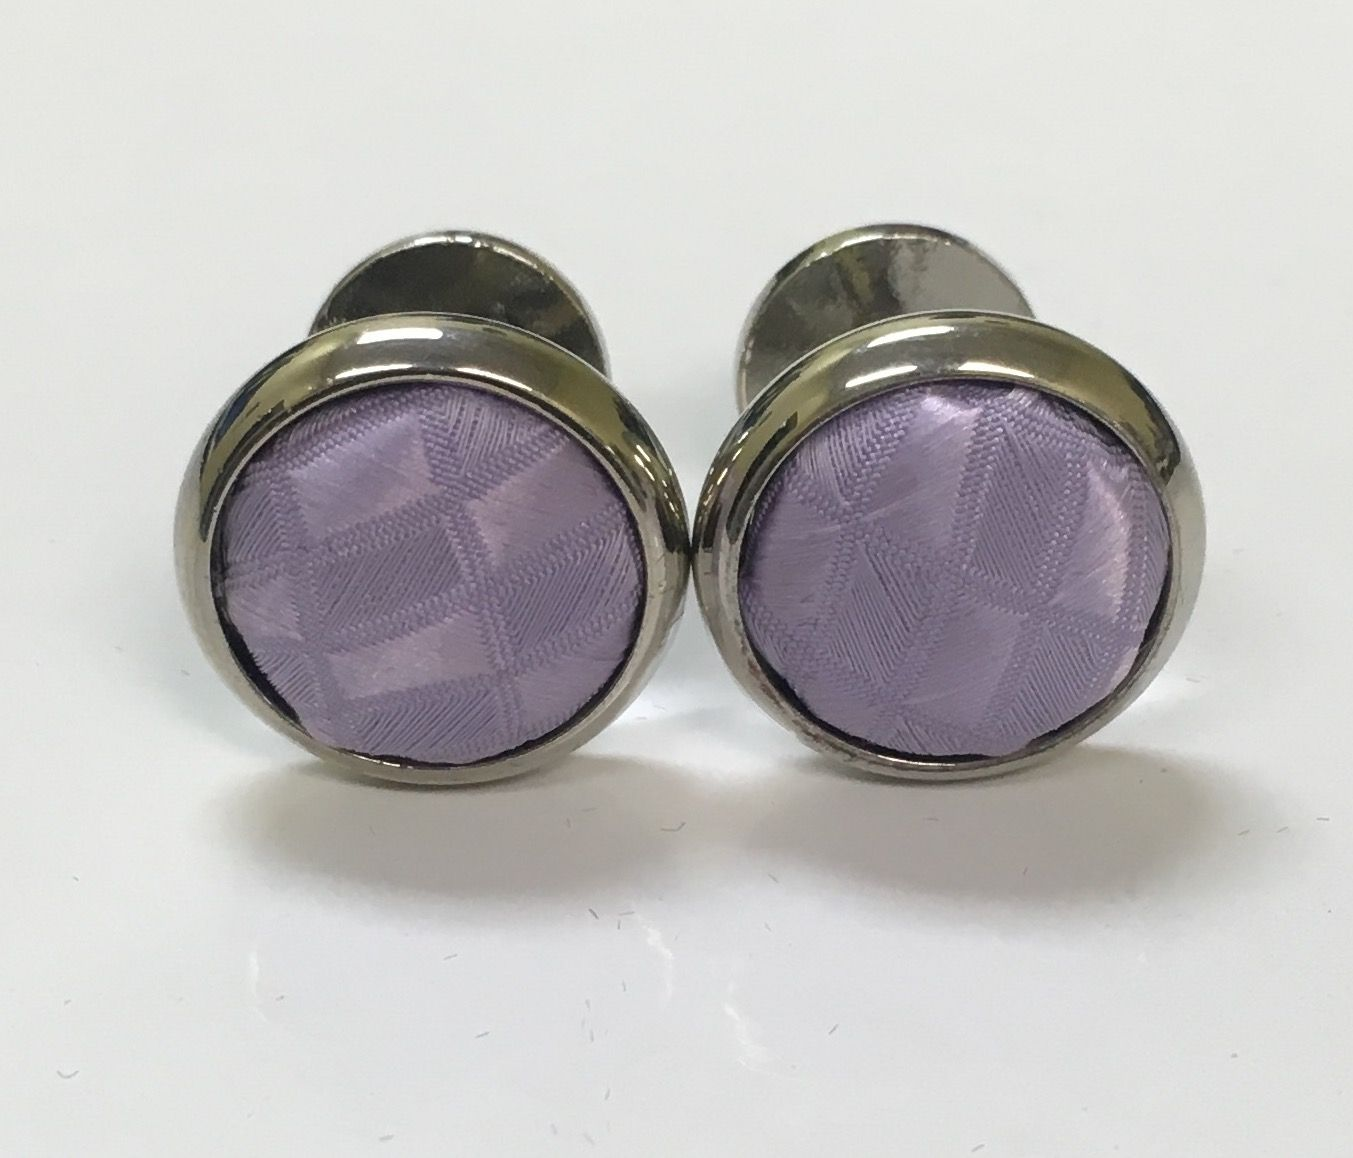 *2 Pc. Exquisite Fabric Cufflinks - Lavender